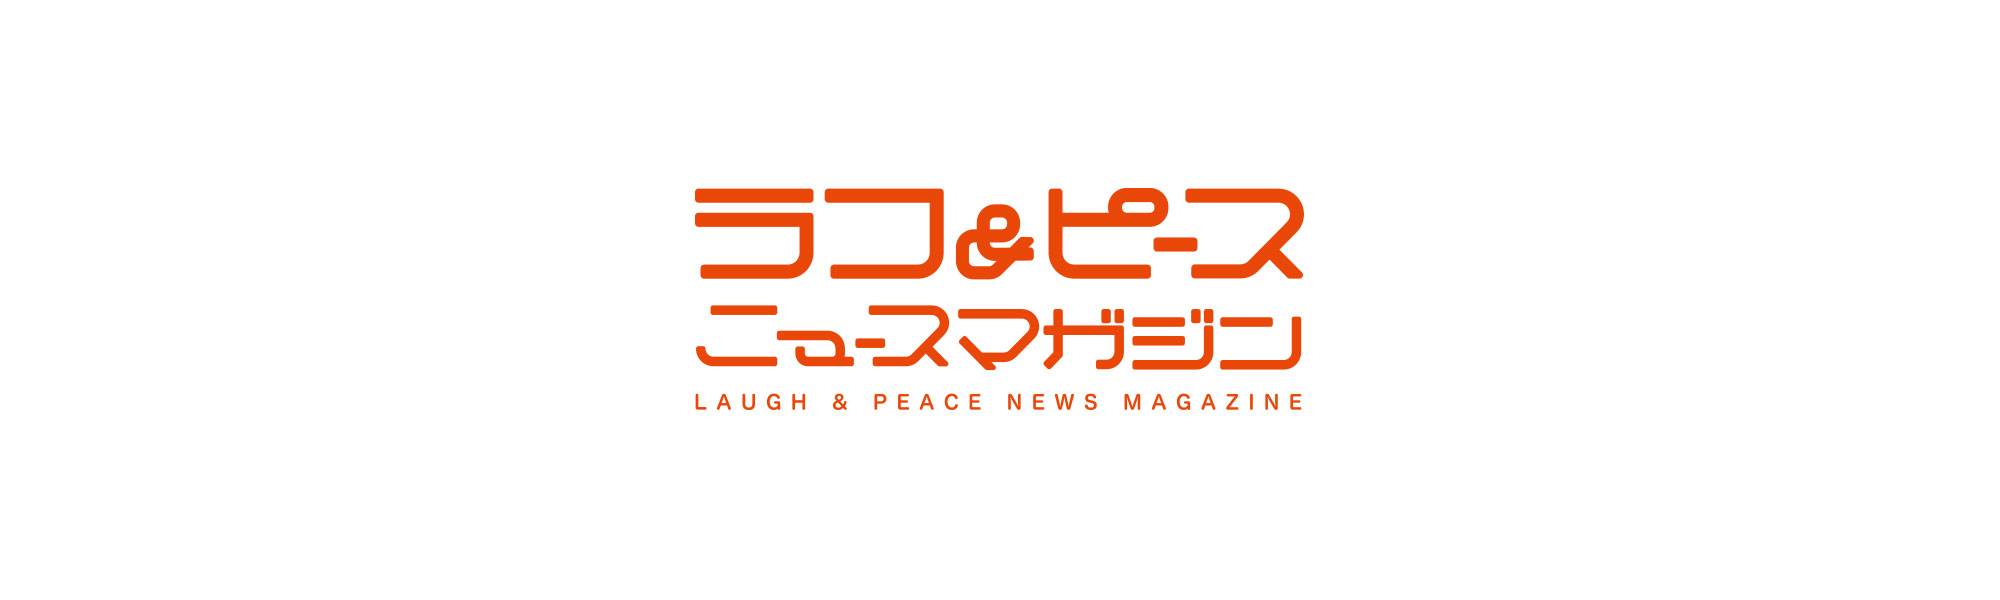 laugh_and_peace_news_magazine_logo_002